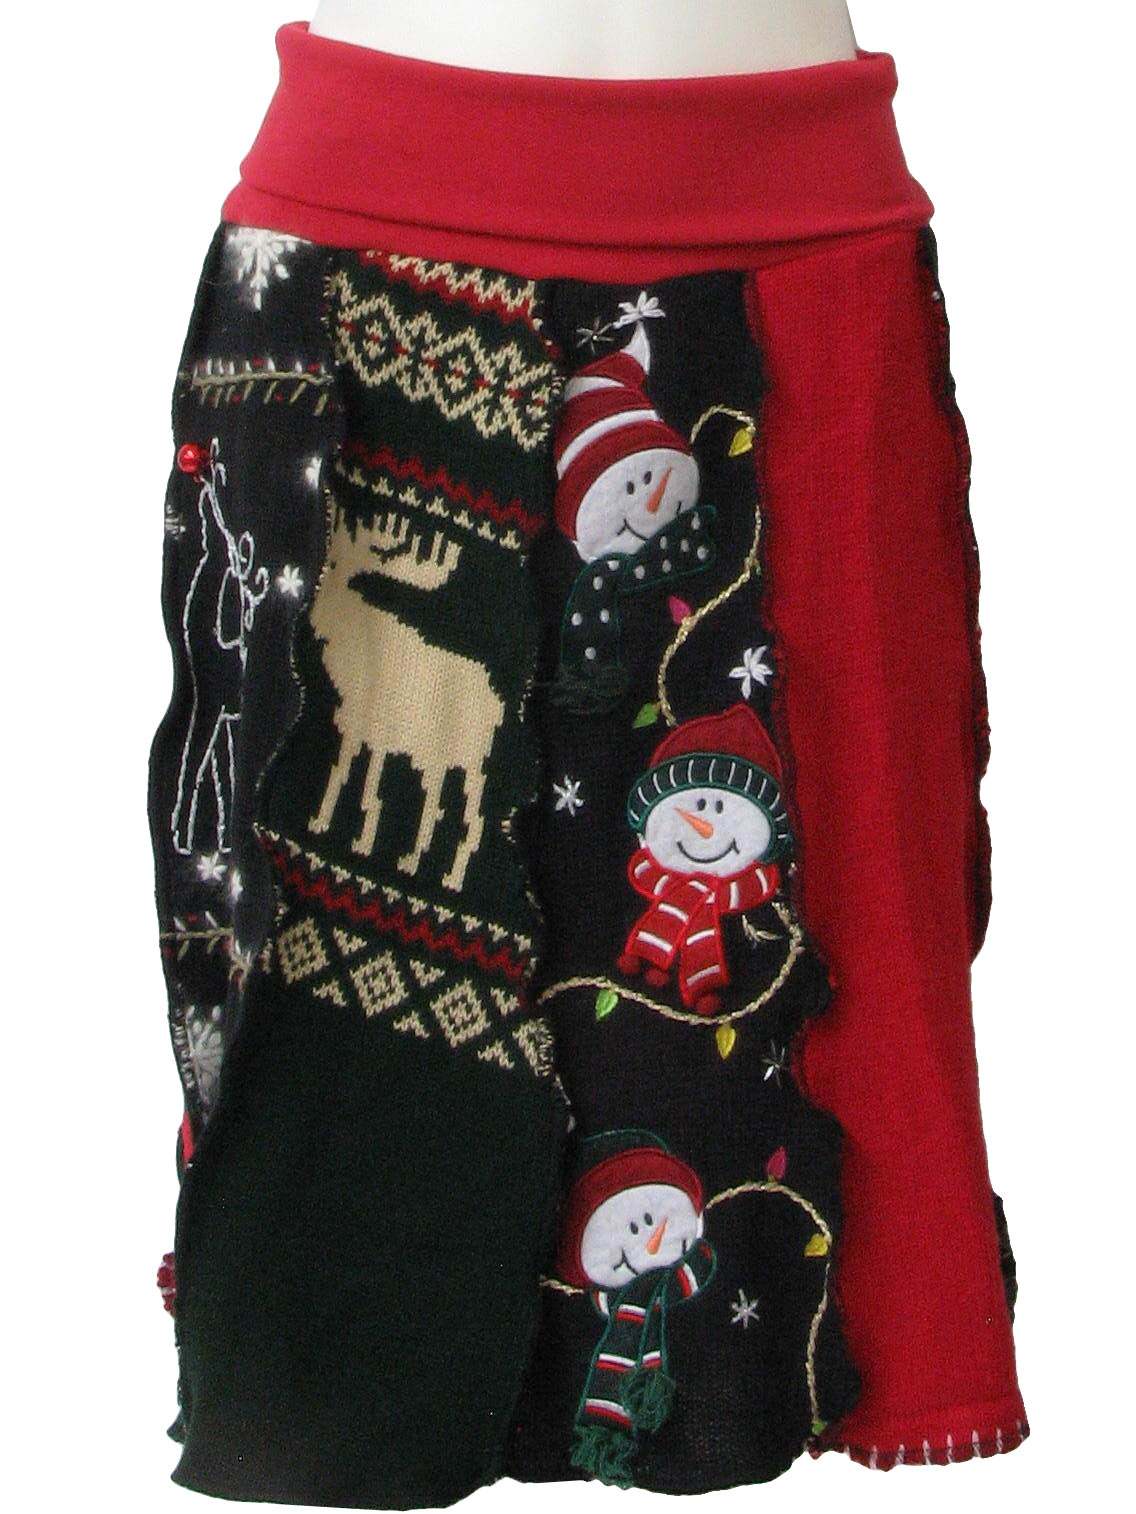 eighties vintage womens ugly christmas sweater skirt womens unique one of a kind holiday knit skirt hand made from repurposed ugly christmas sweaters - Unique Christmas Sweaters